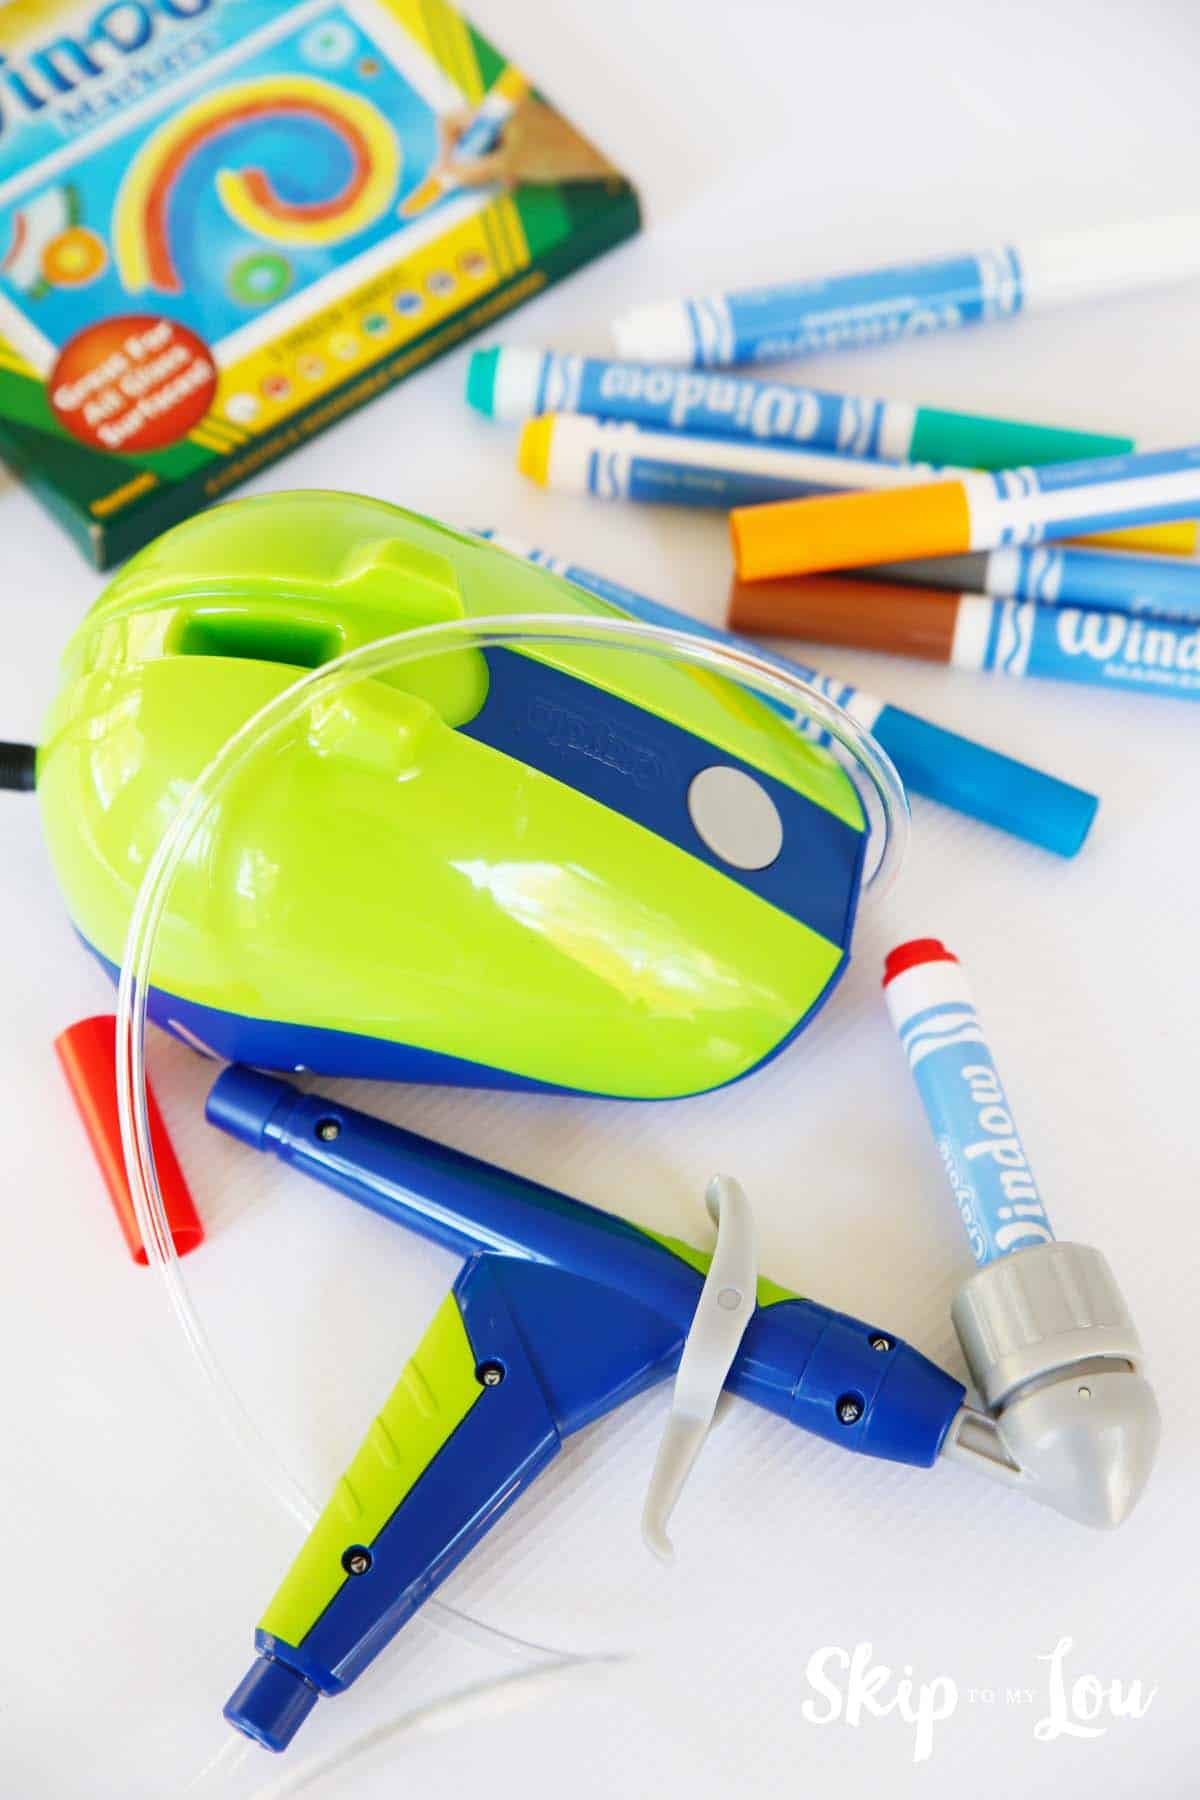 crayola-air-marker-sprayer-review